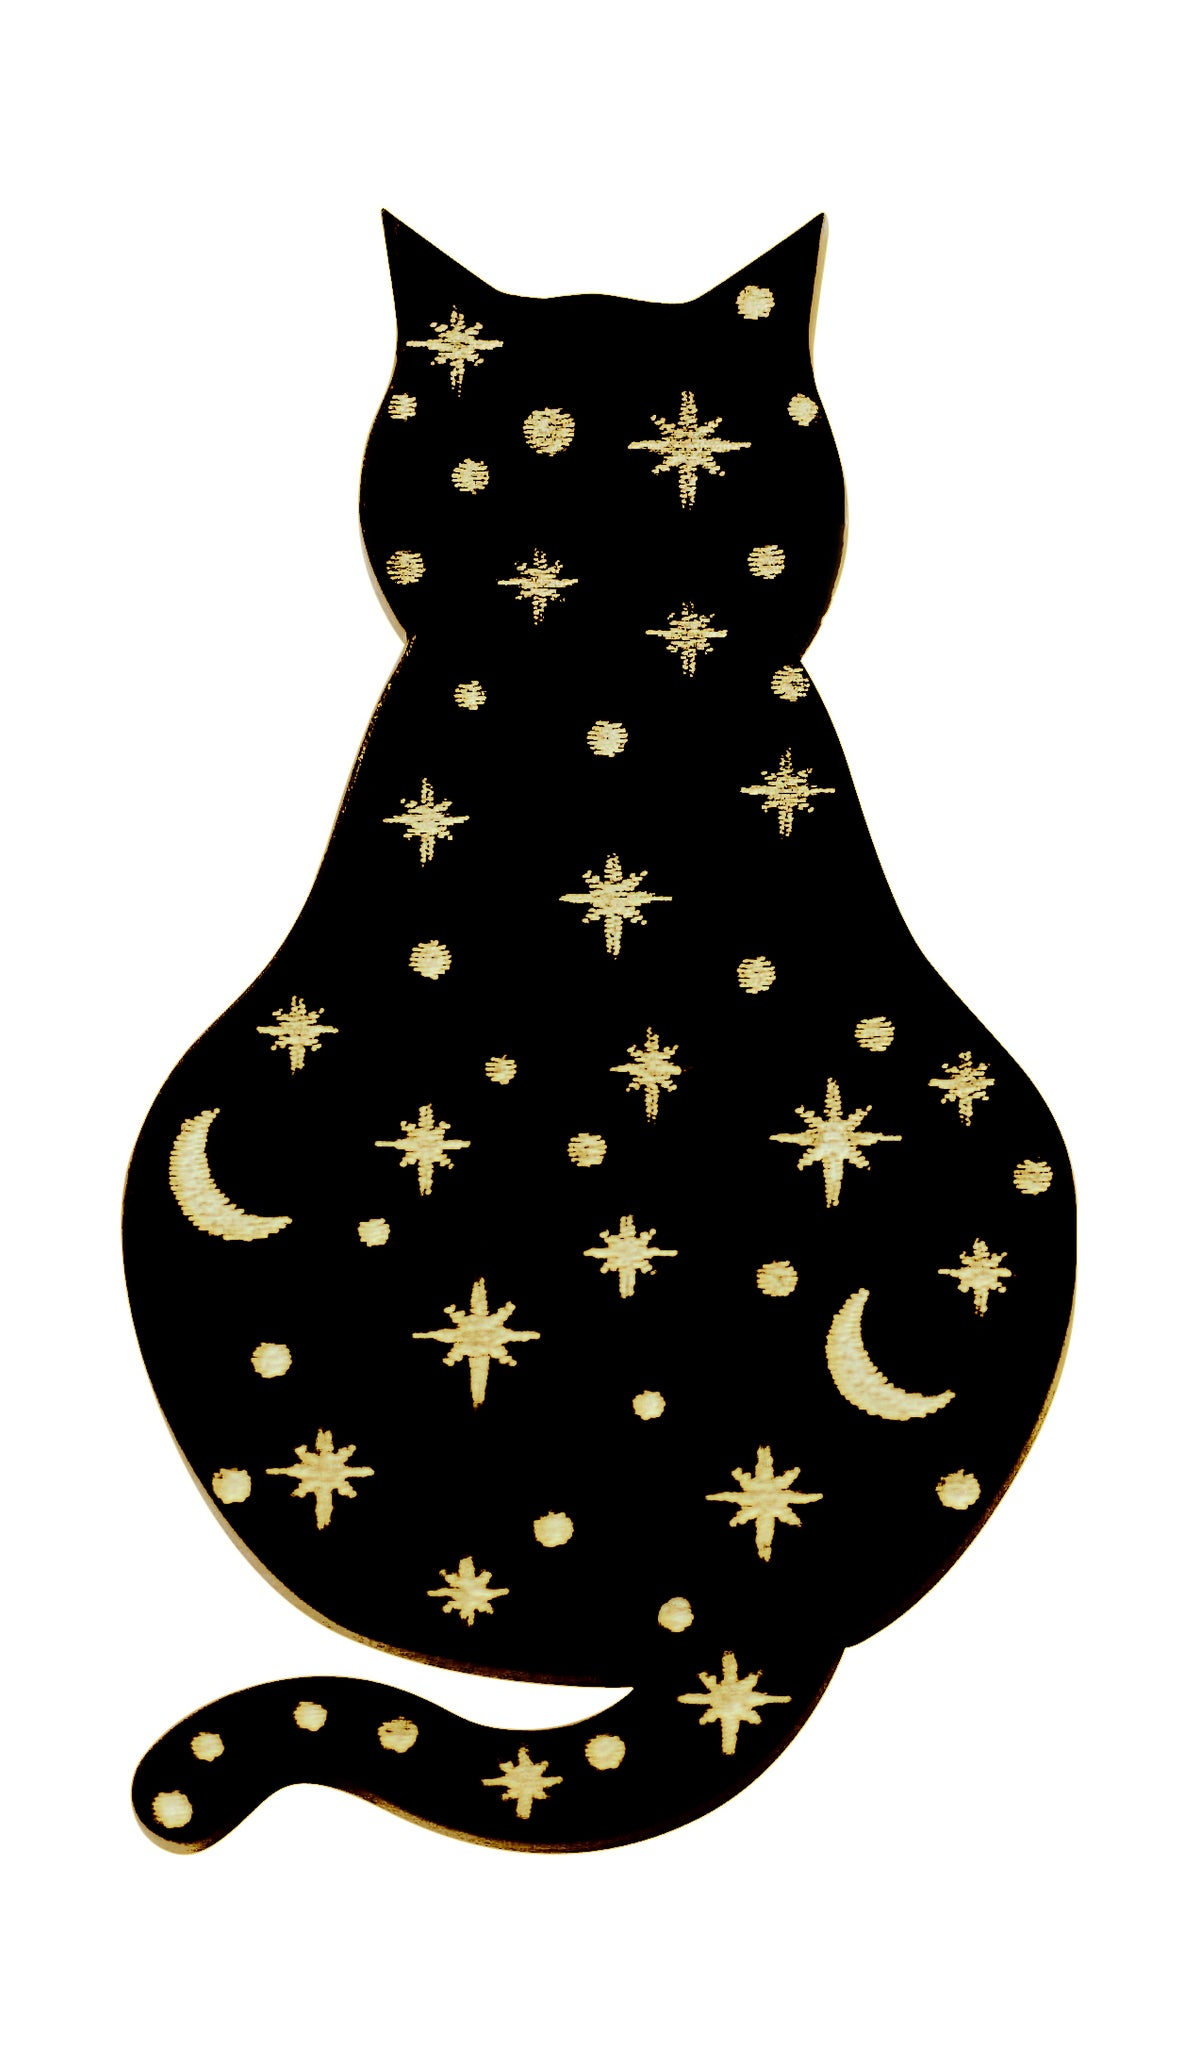 Image of Constellation Black Cat Brooch